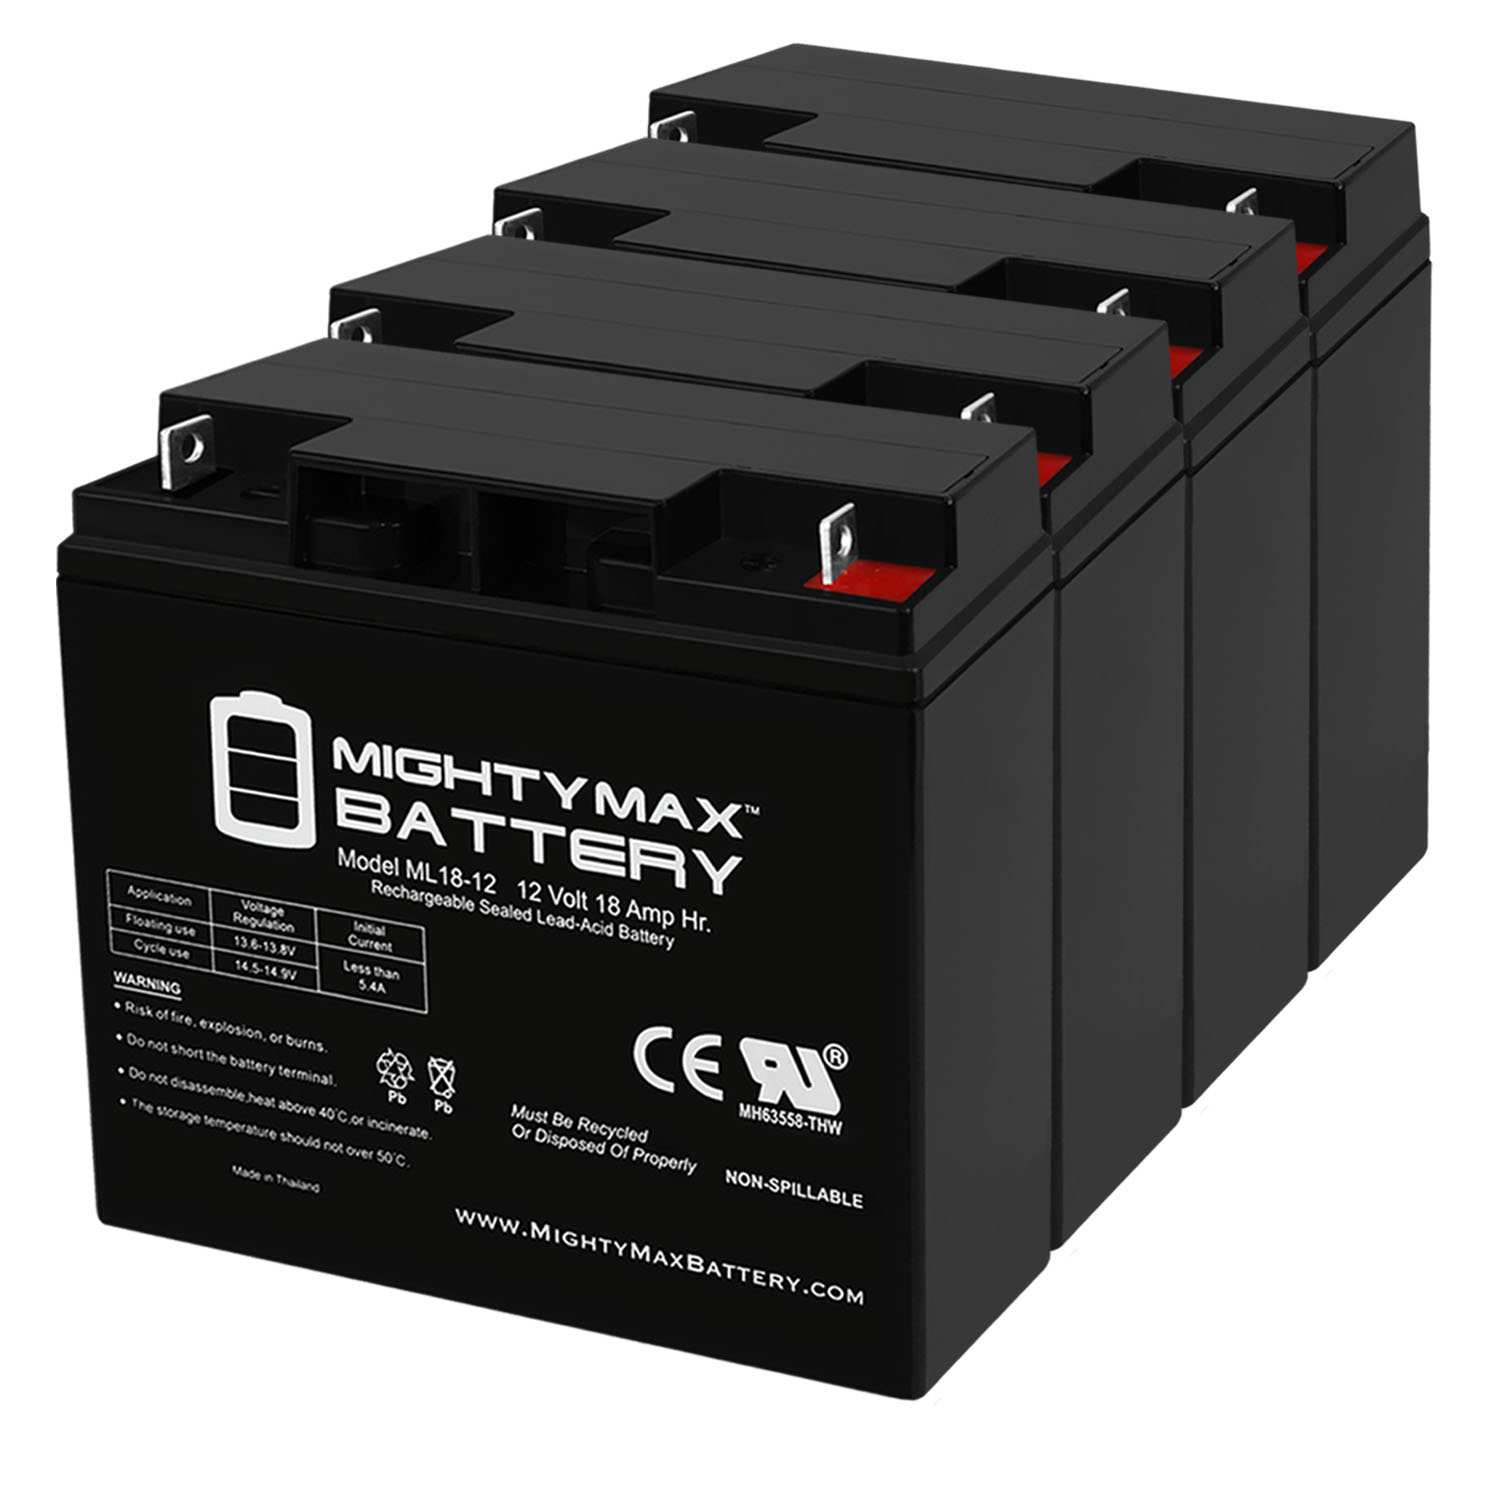 12V 18AH Battery for Door King 6002 10W Solar Control Box - 4 Pack